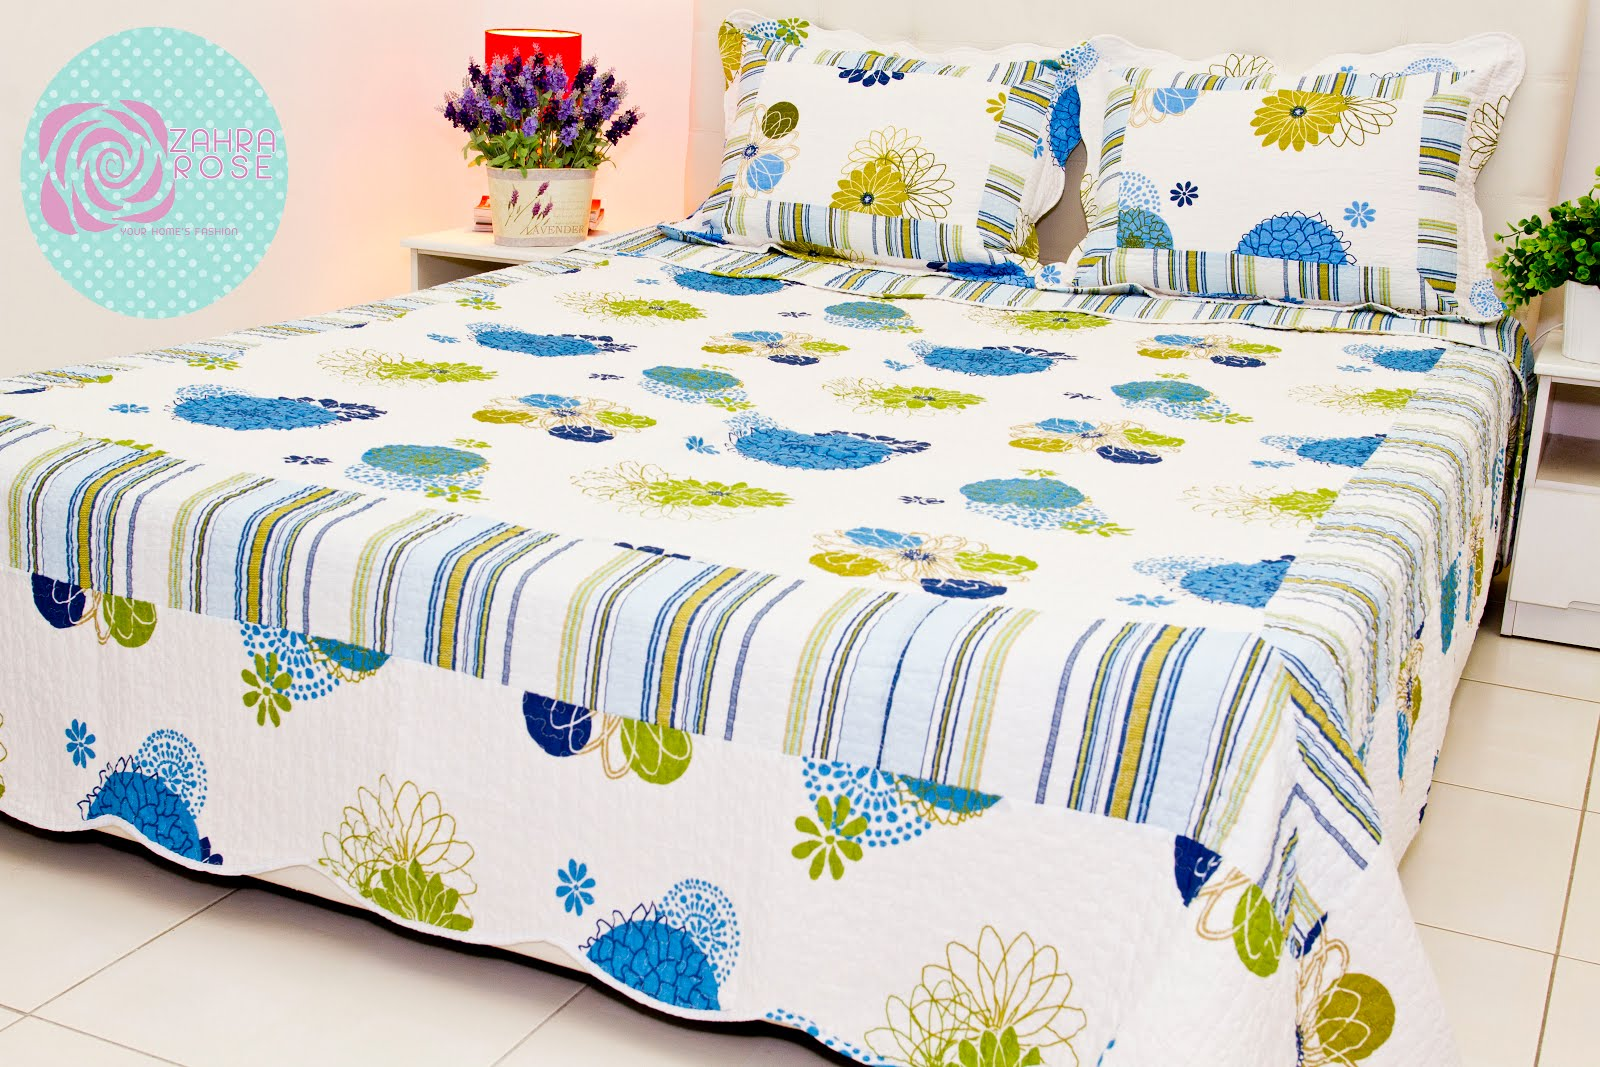 Patchwork bed sheets patterns - Zr 002